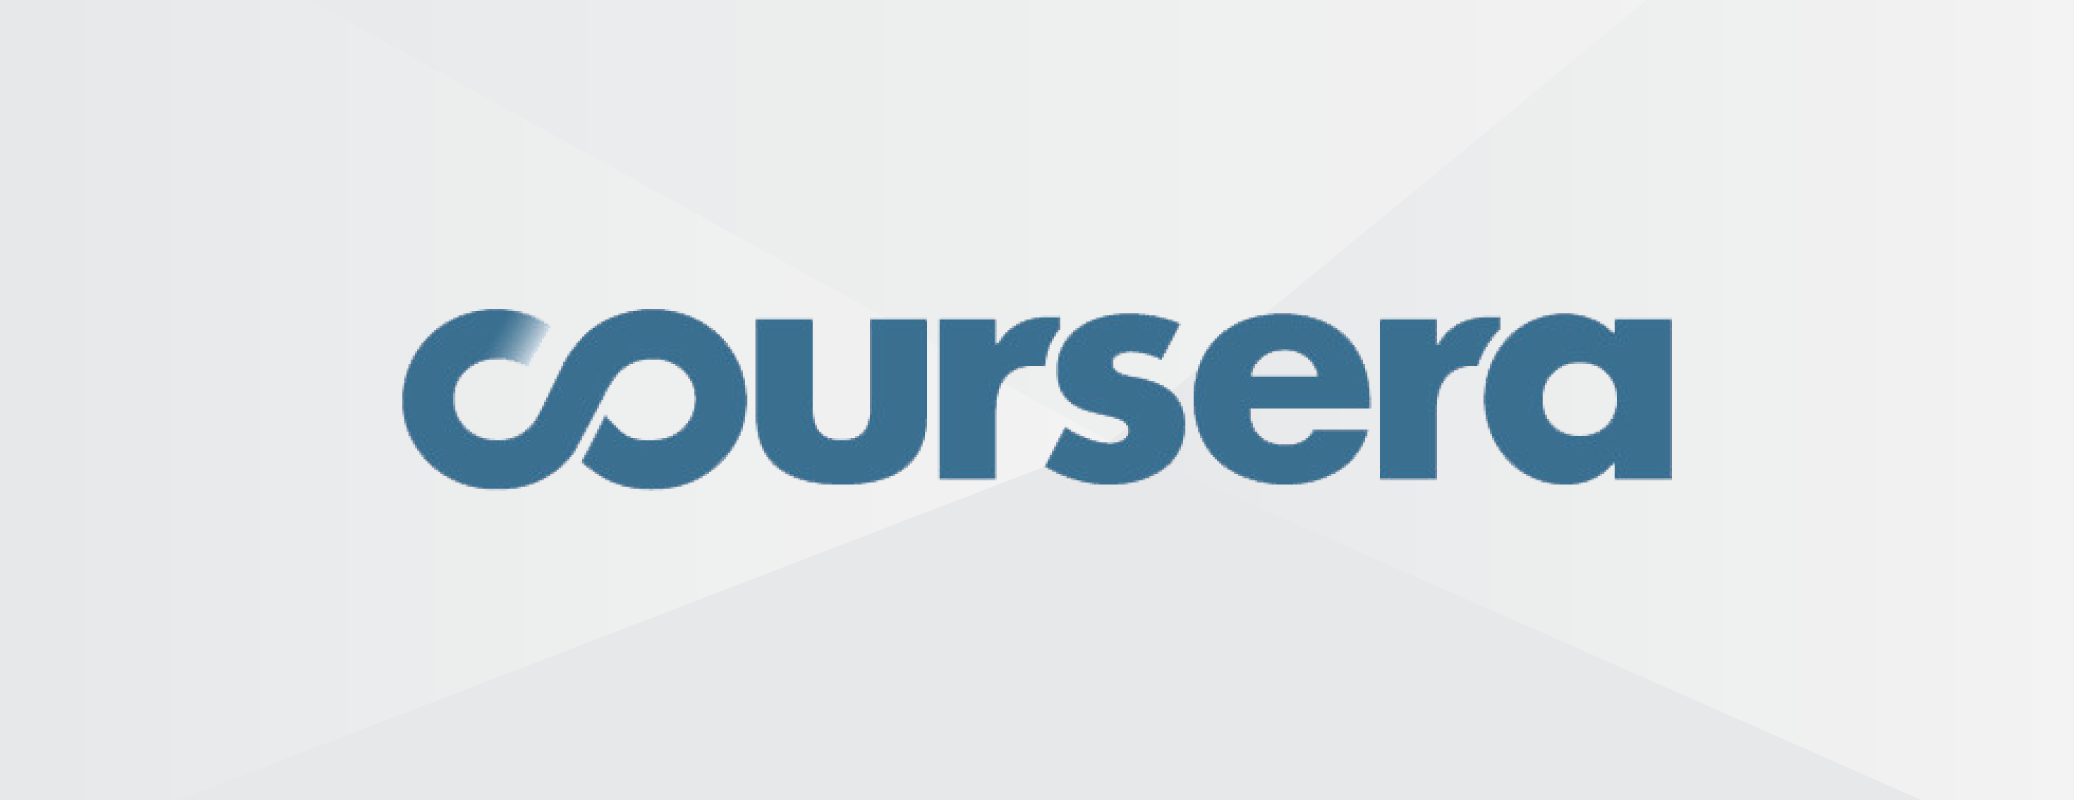 coursera-2074.png